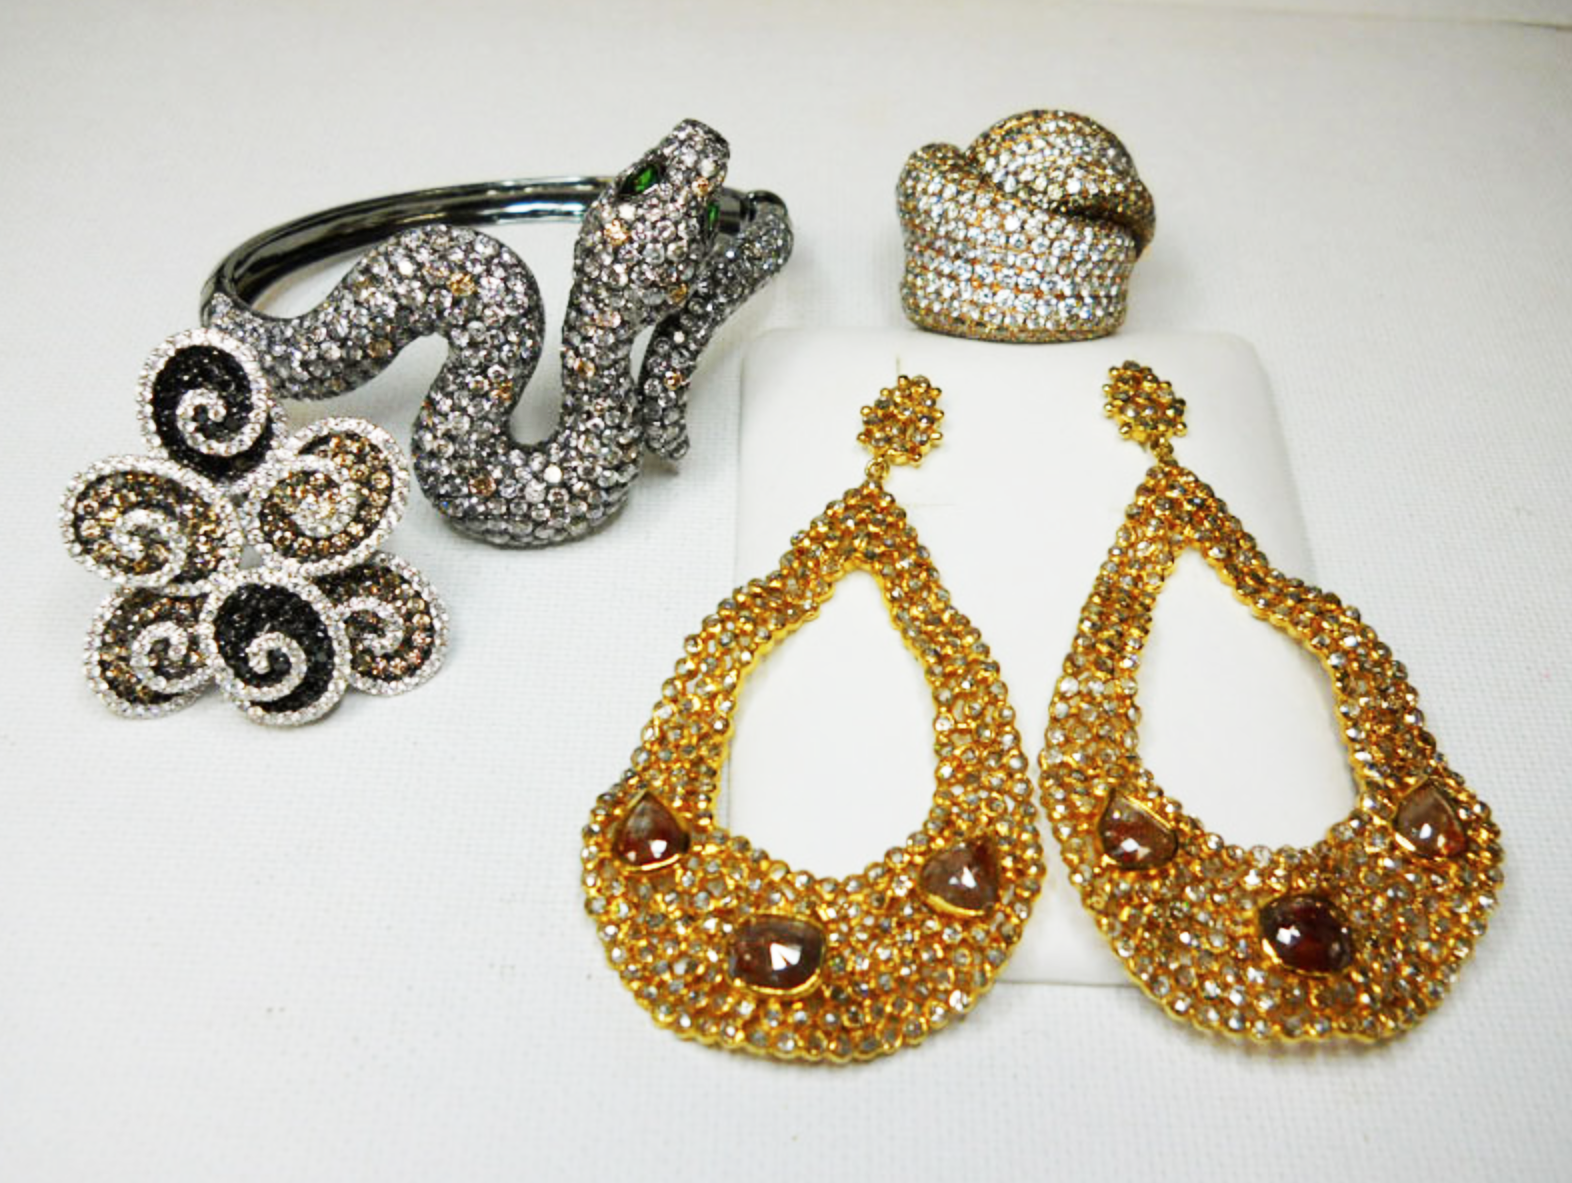 Marysol Patton selected this gorgeous snake cuff bracelet, rings and earrings set with champagne, cognac & black diamonds to wear to the Hope & Stars Gala.